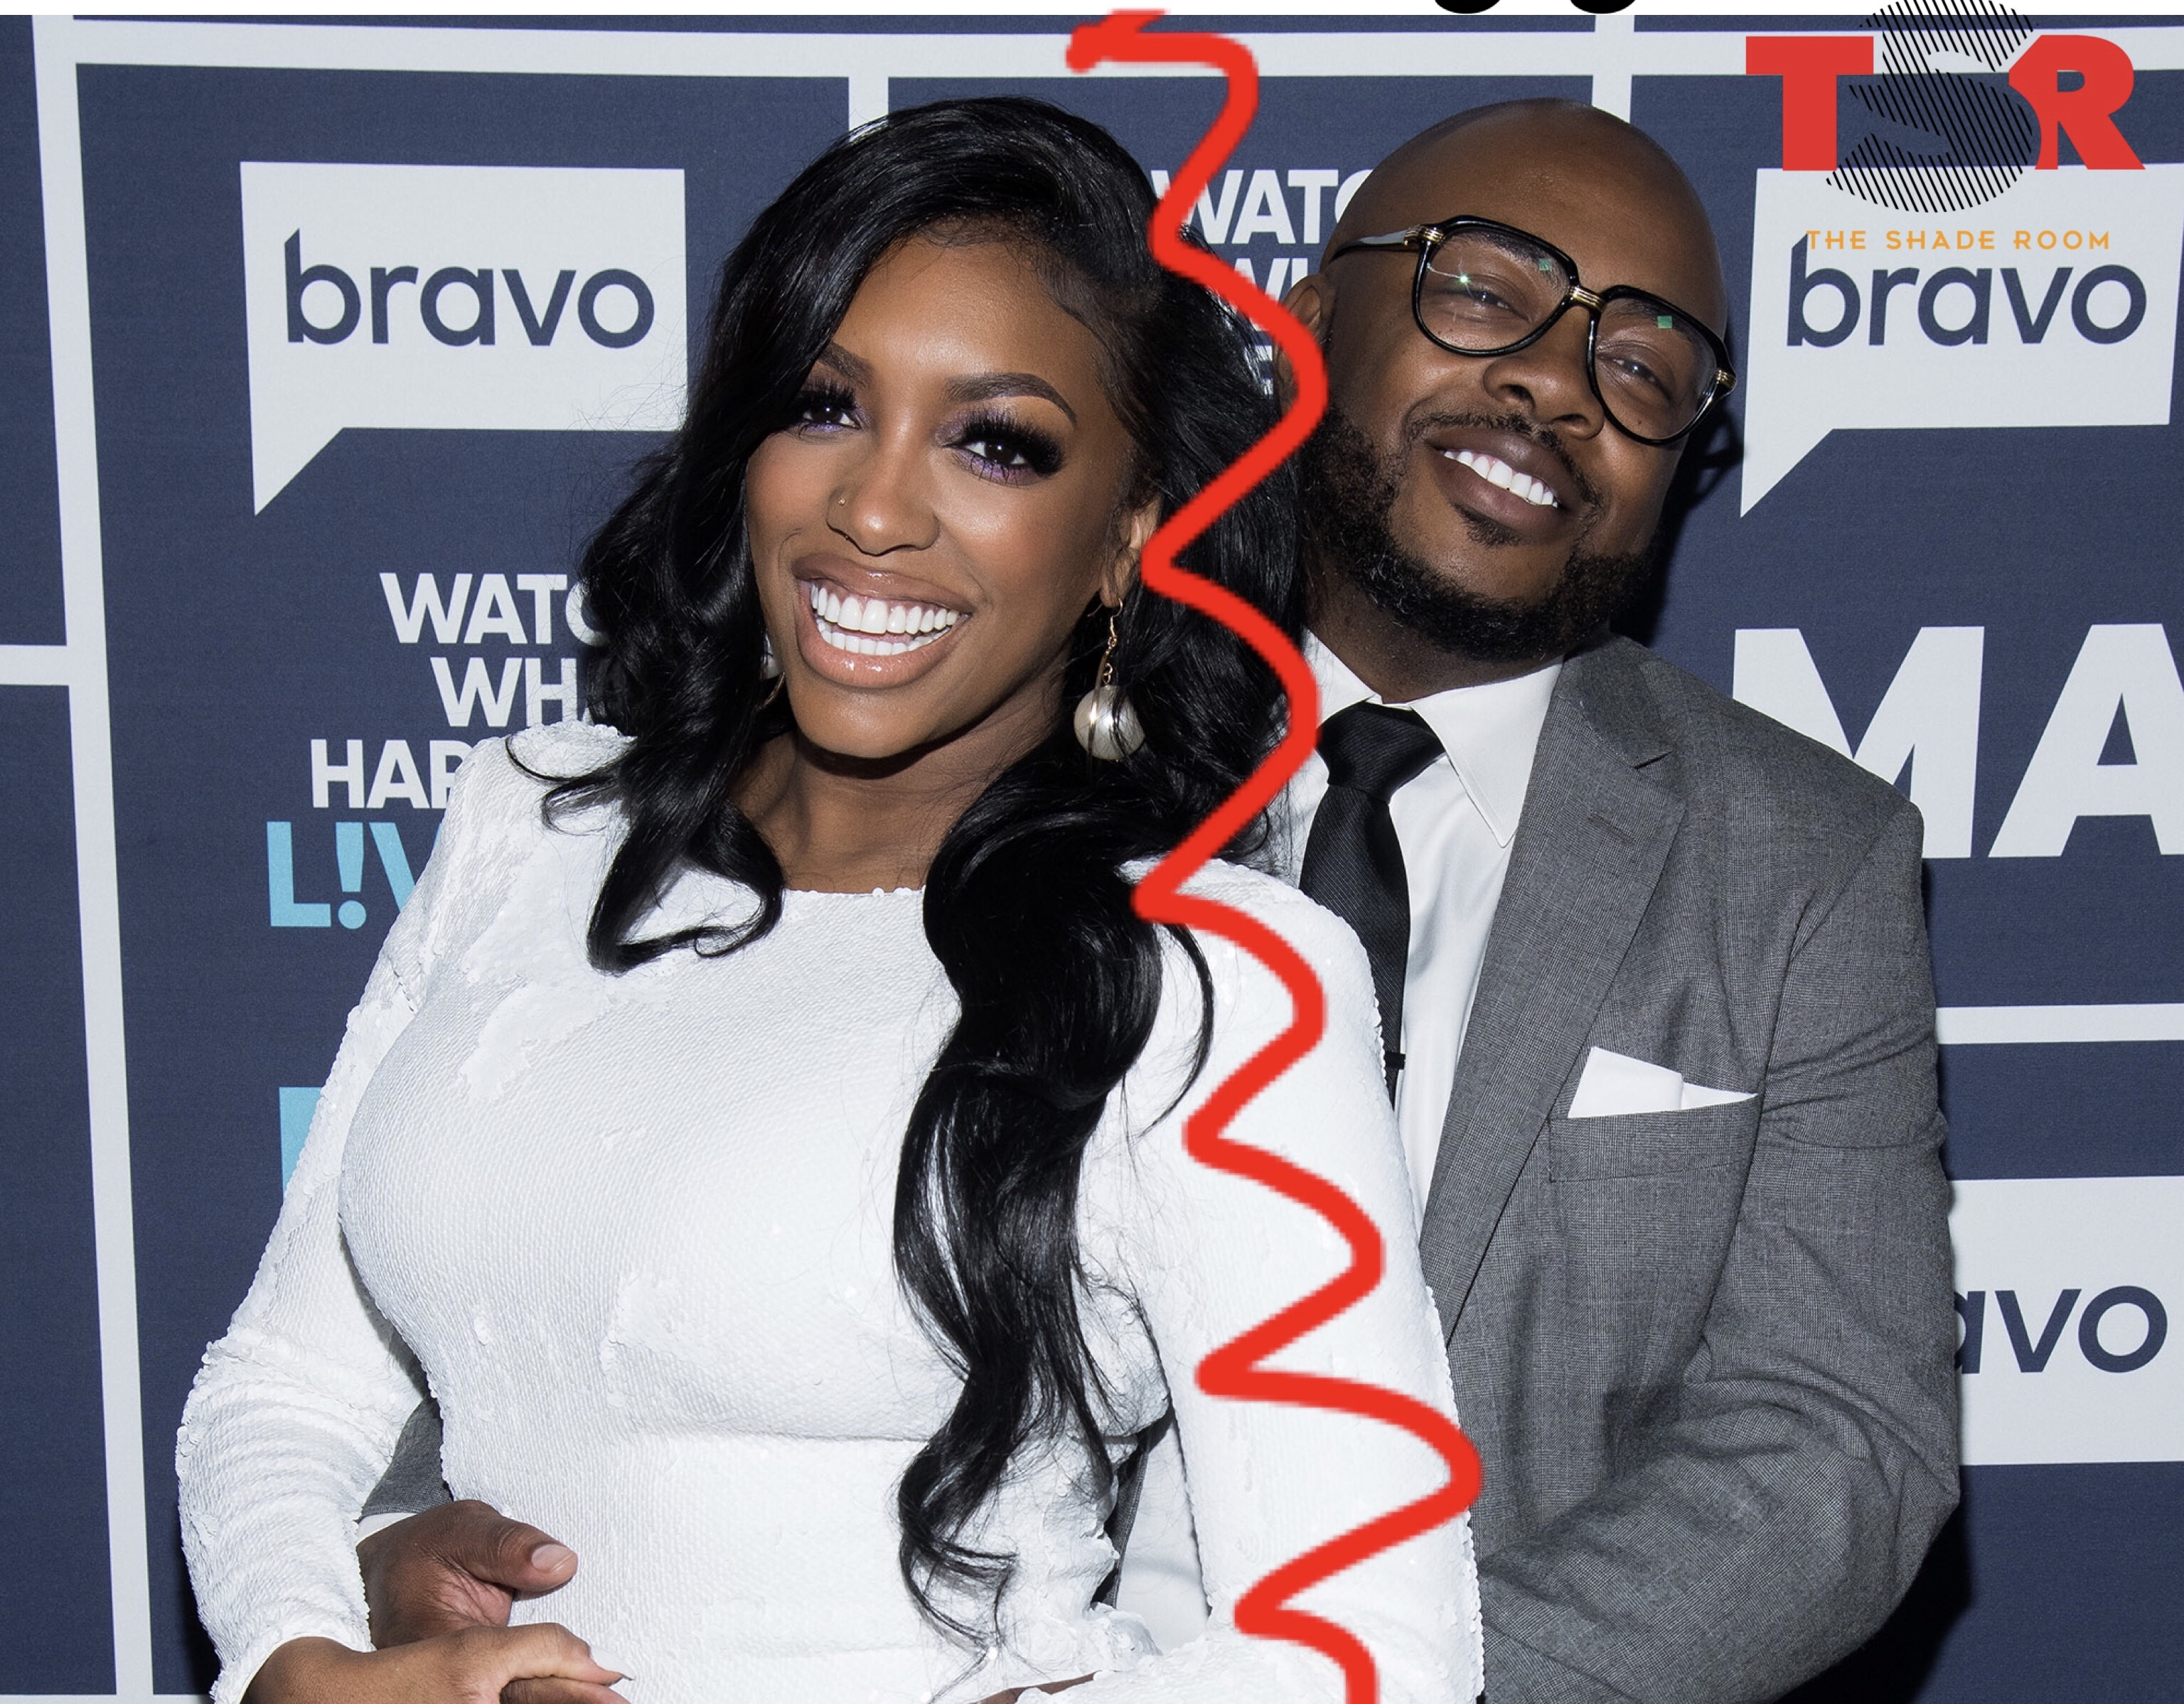 Porsha Williams and Dennis McKinley stand in front of a Bravo step and repeat embracing there's a red line drawn between them